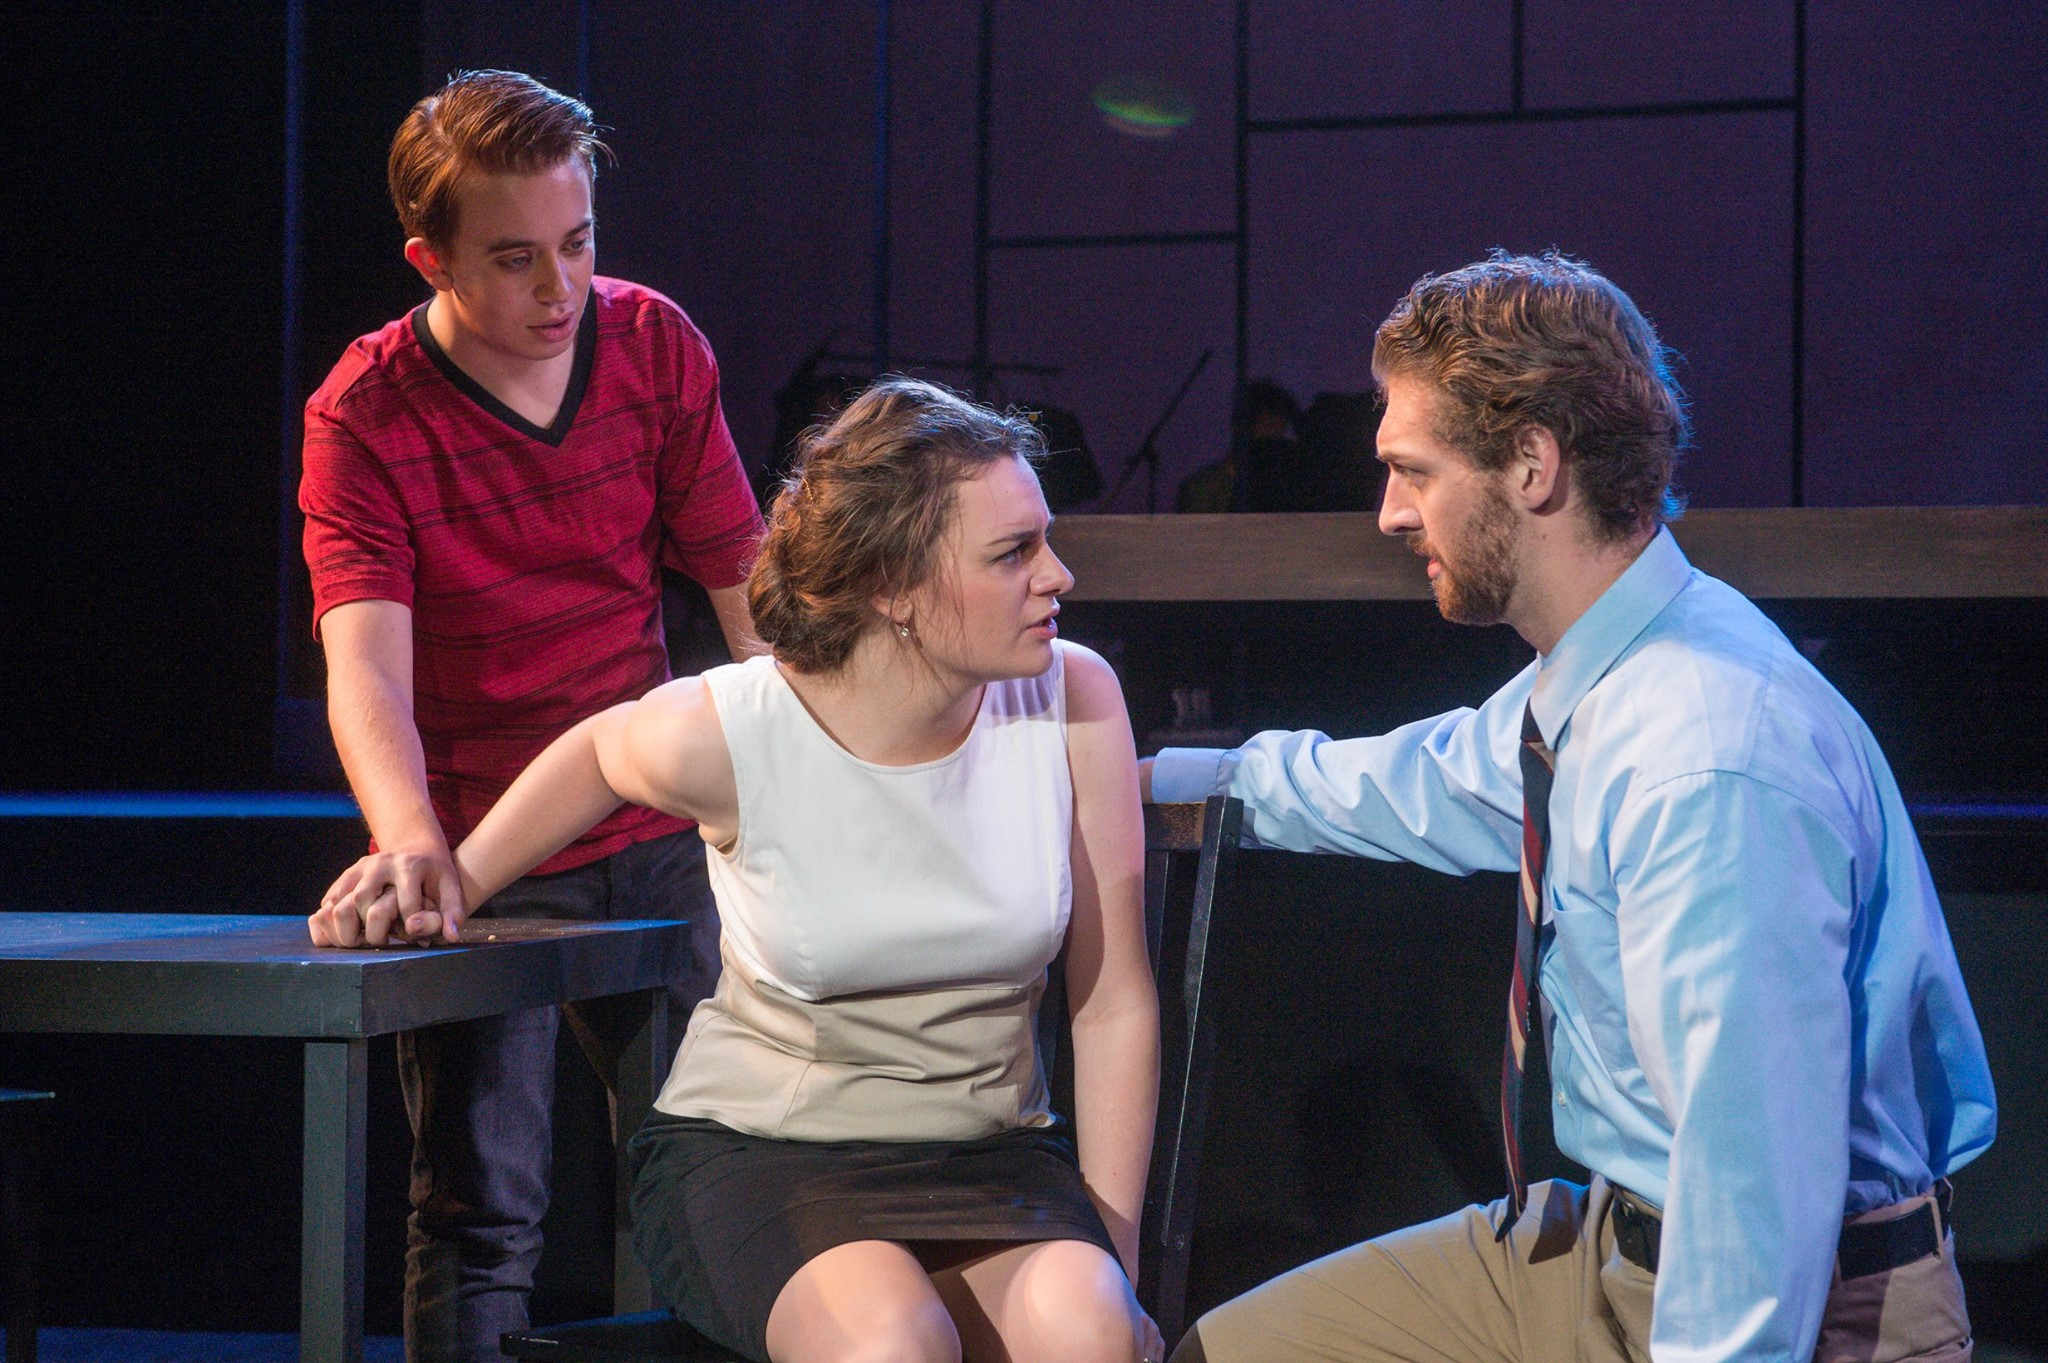 A scene from Next to Normal